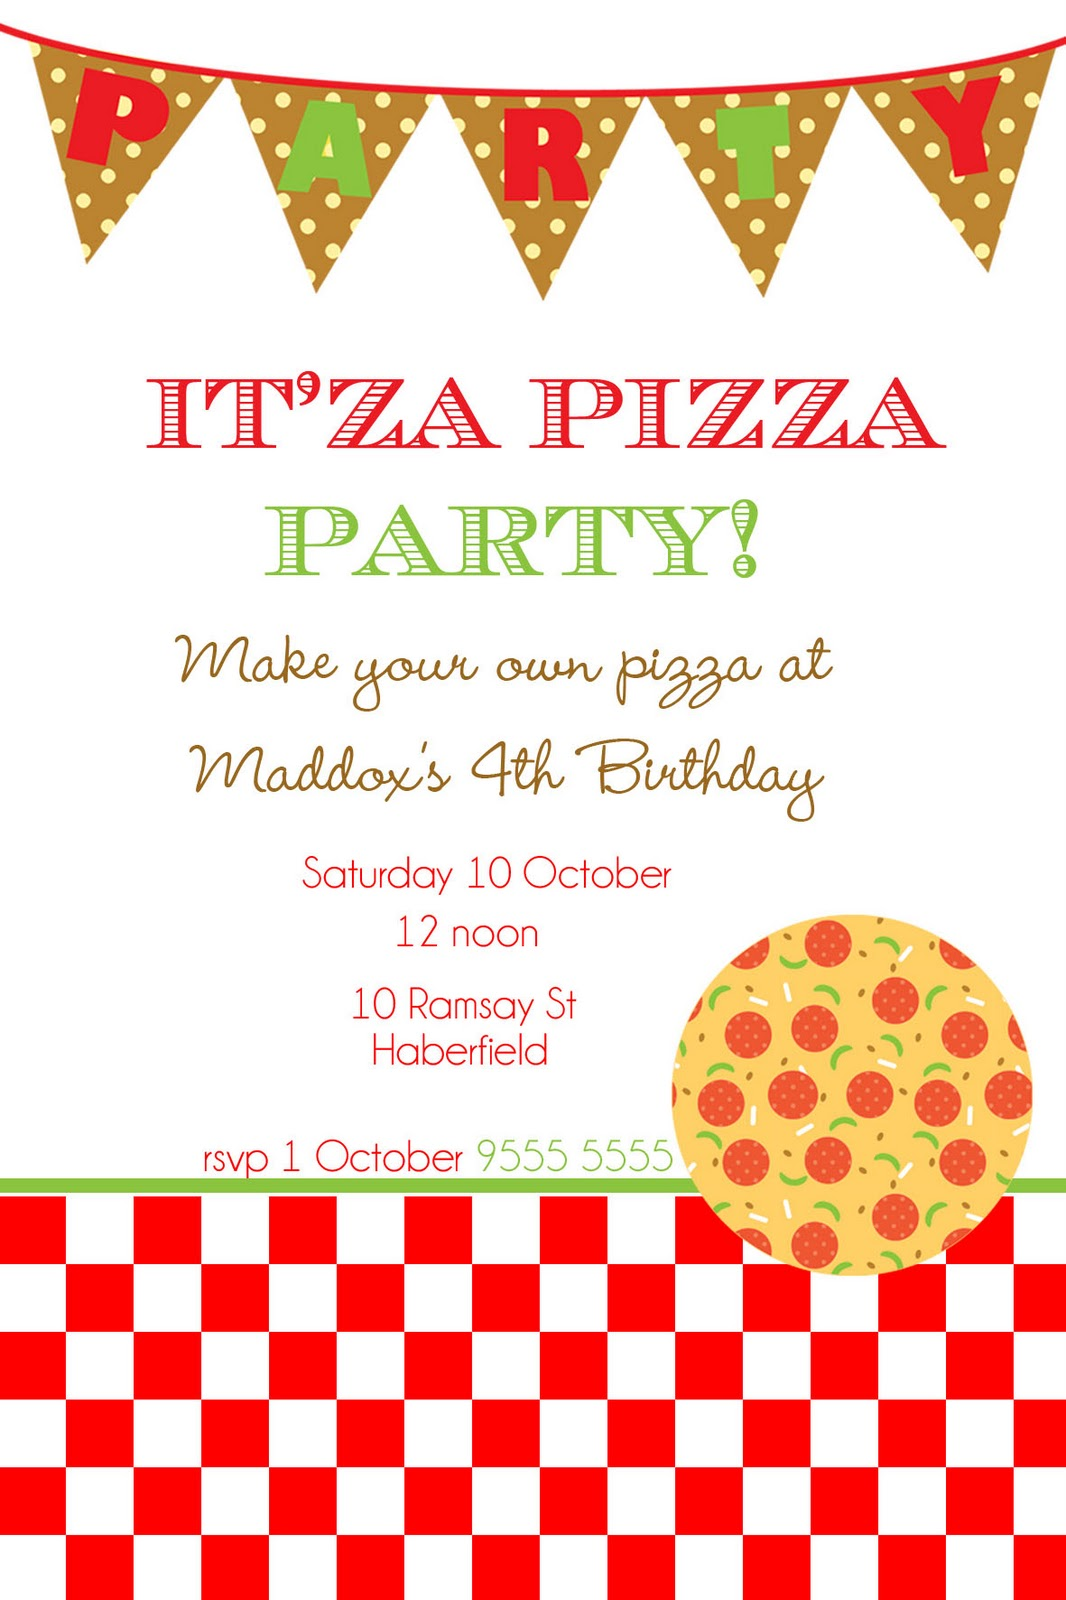 pizza party invitation template pizza party invitations quad pizza party invitation by mon tresor